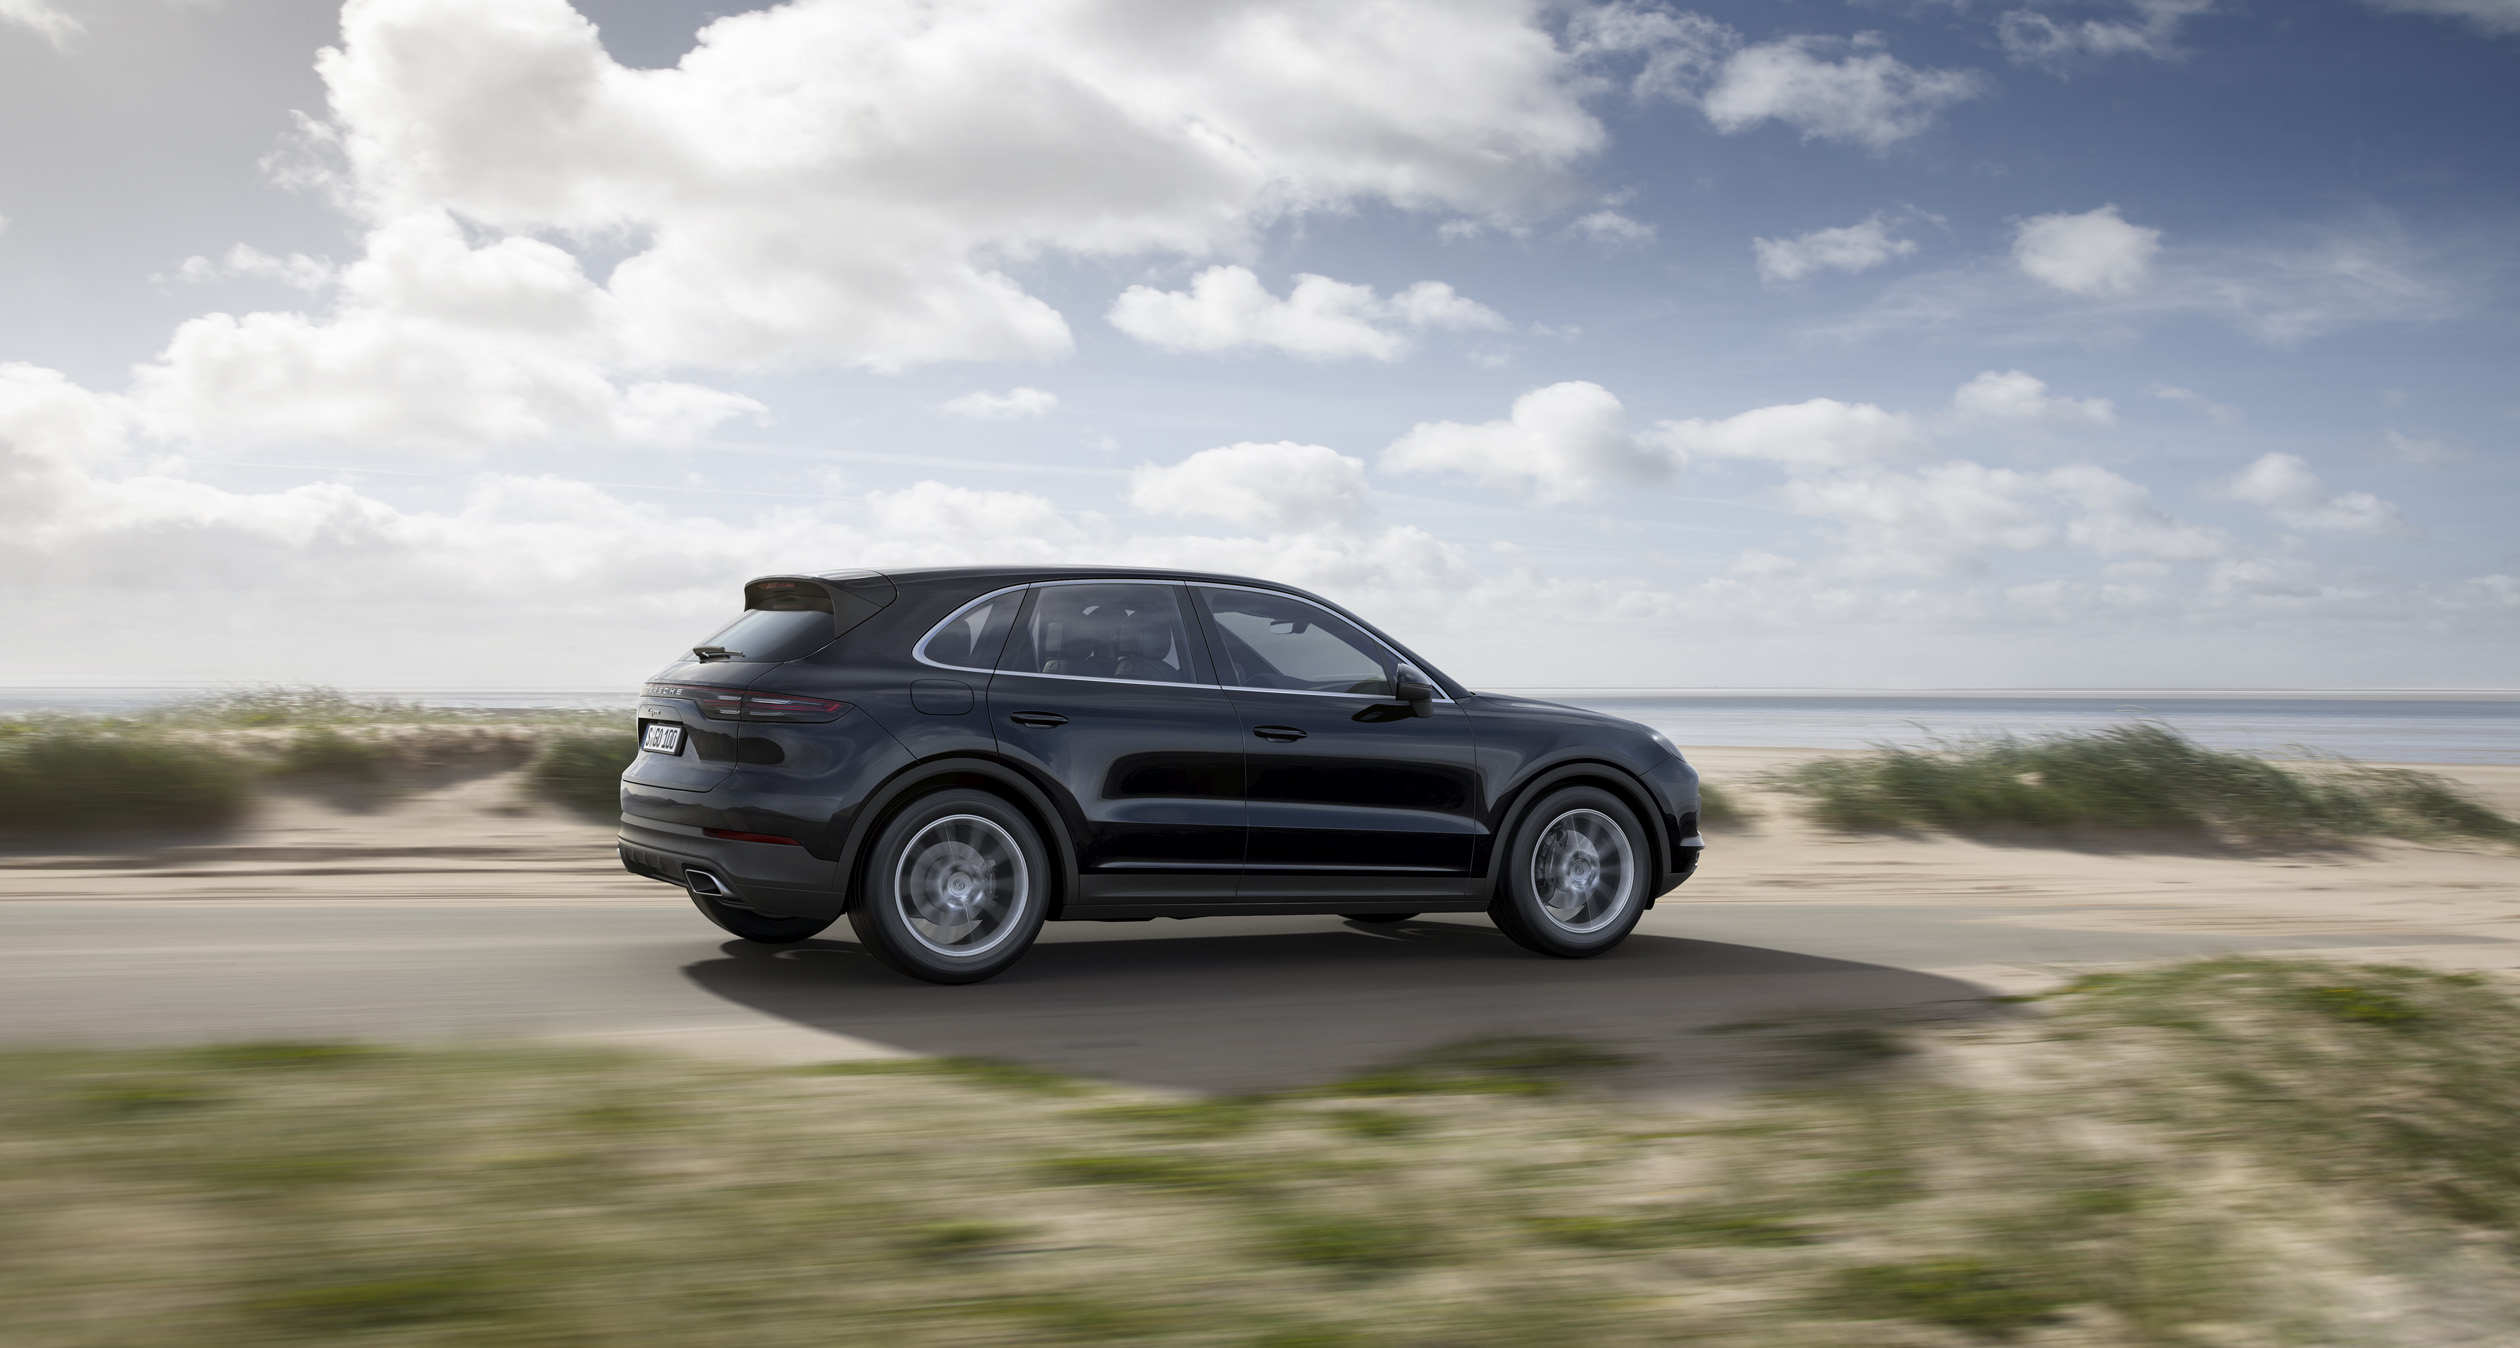 porsche cayenne turbo 2018. contemporary 2018 you can order one now starting from 66750 or 83950 for the s  model before they appear at us porsche dealerships in middle of 2018 inside porsche cayenne turbo 2018